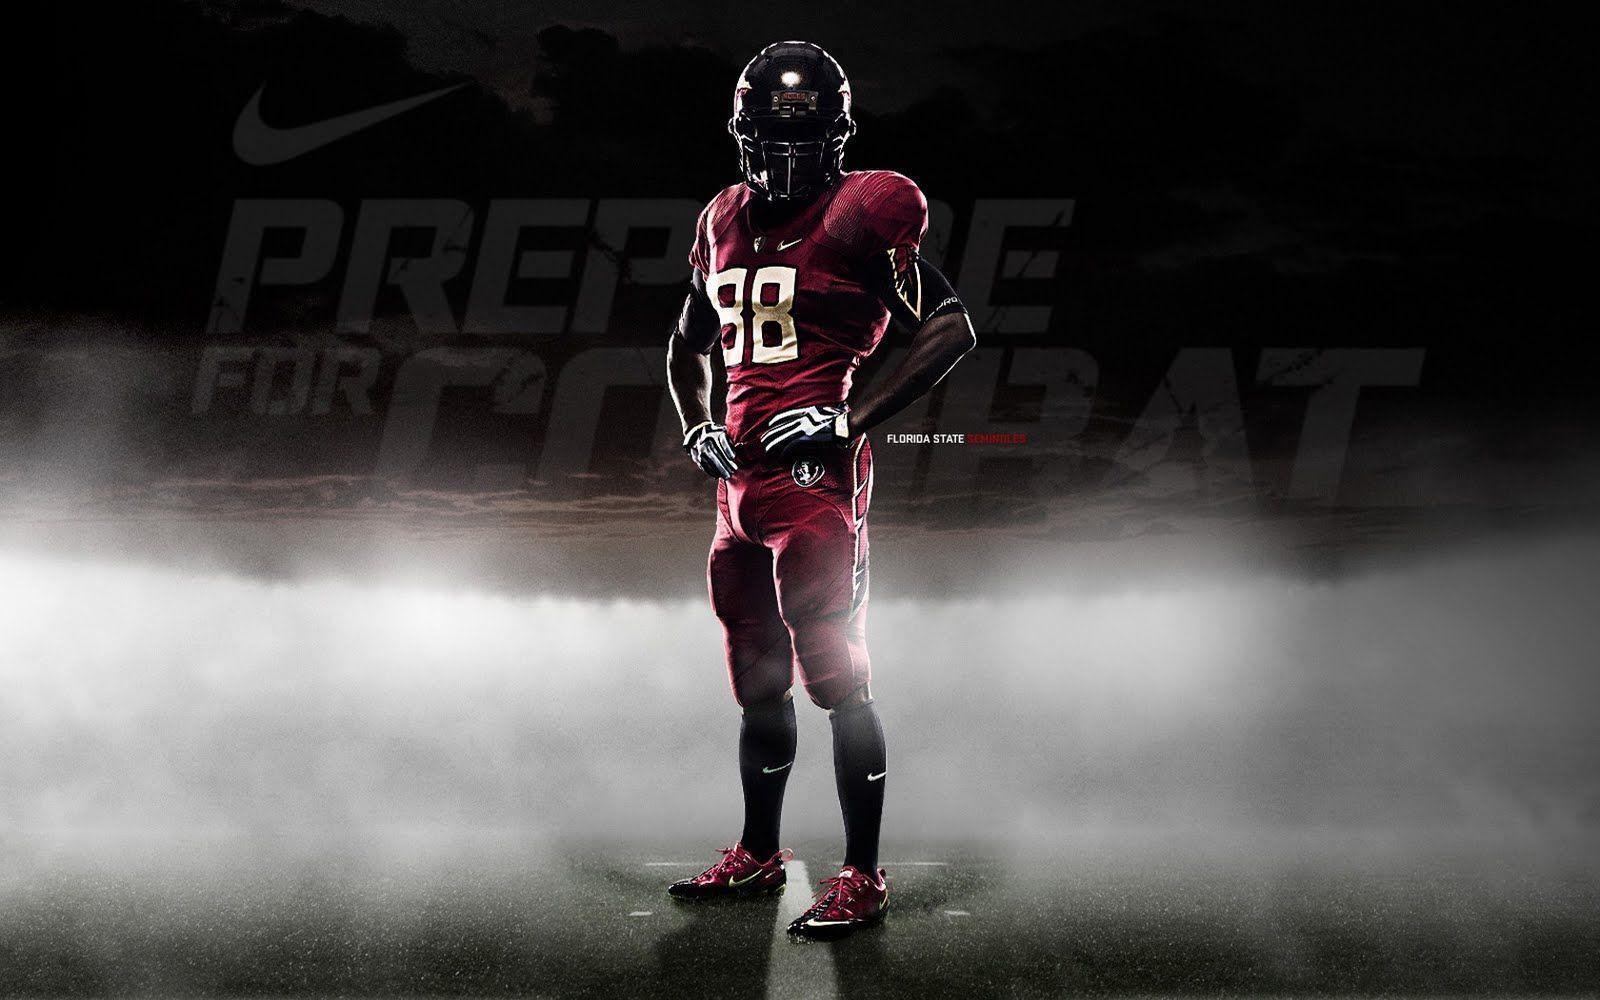 American Football Wallpapers Backgrounds By Fexy Apps: Cool Football Backgrounds